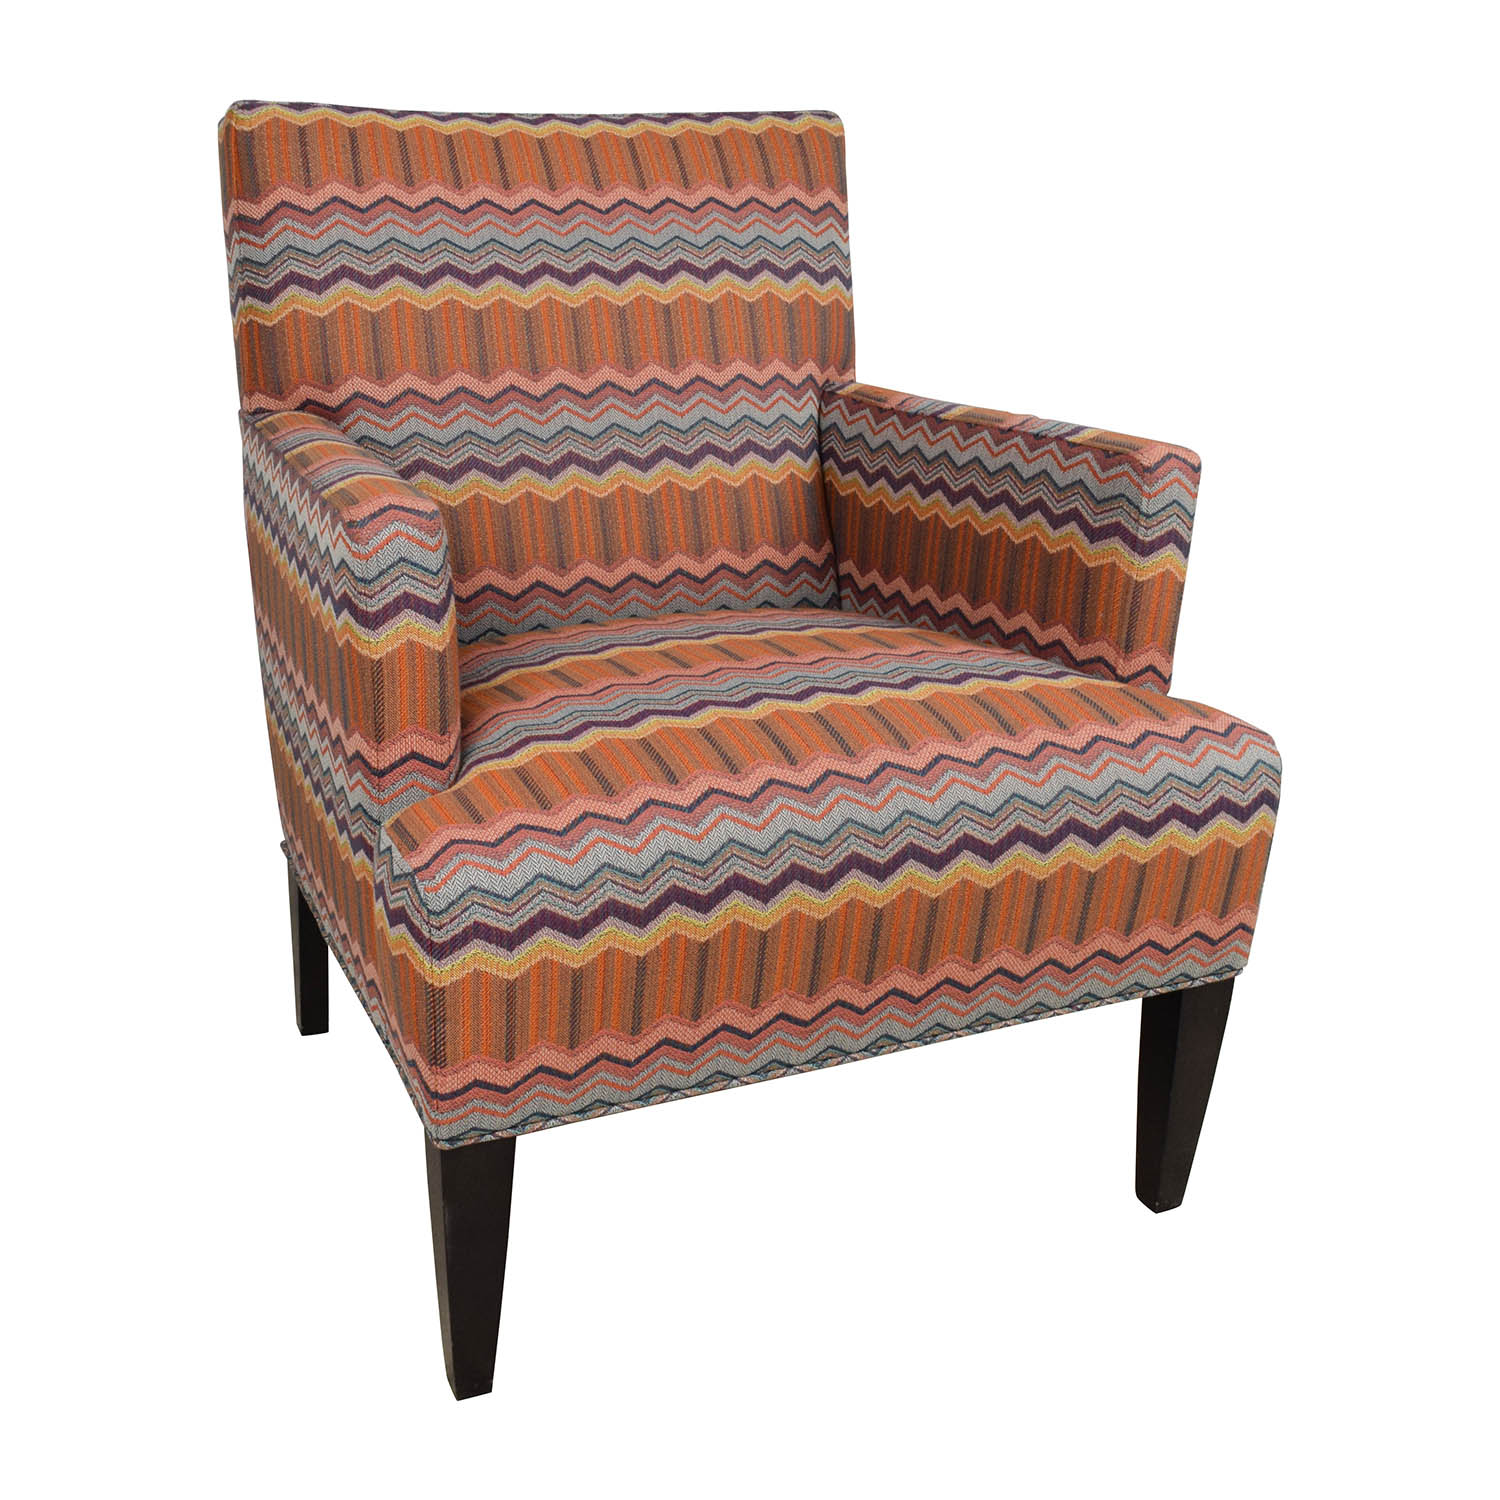 chairs crate and barrel menards patio for one cent 87 off tux armchair